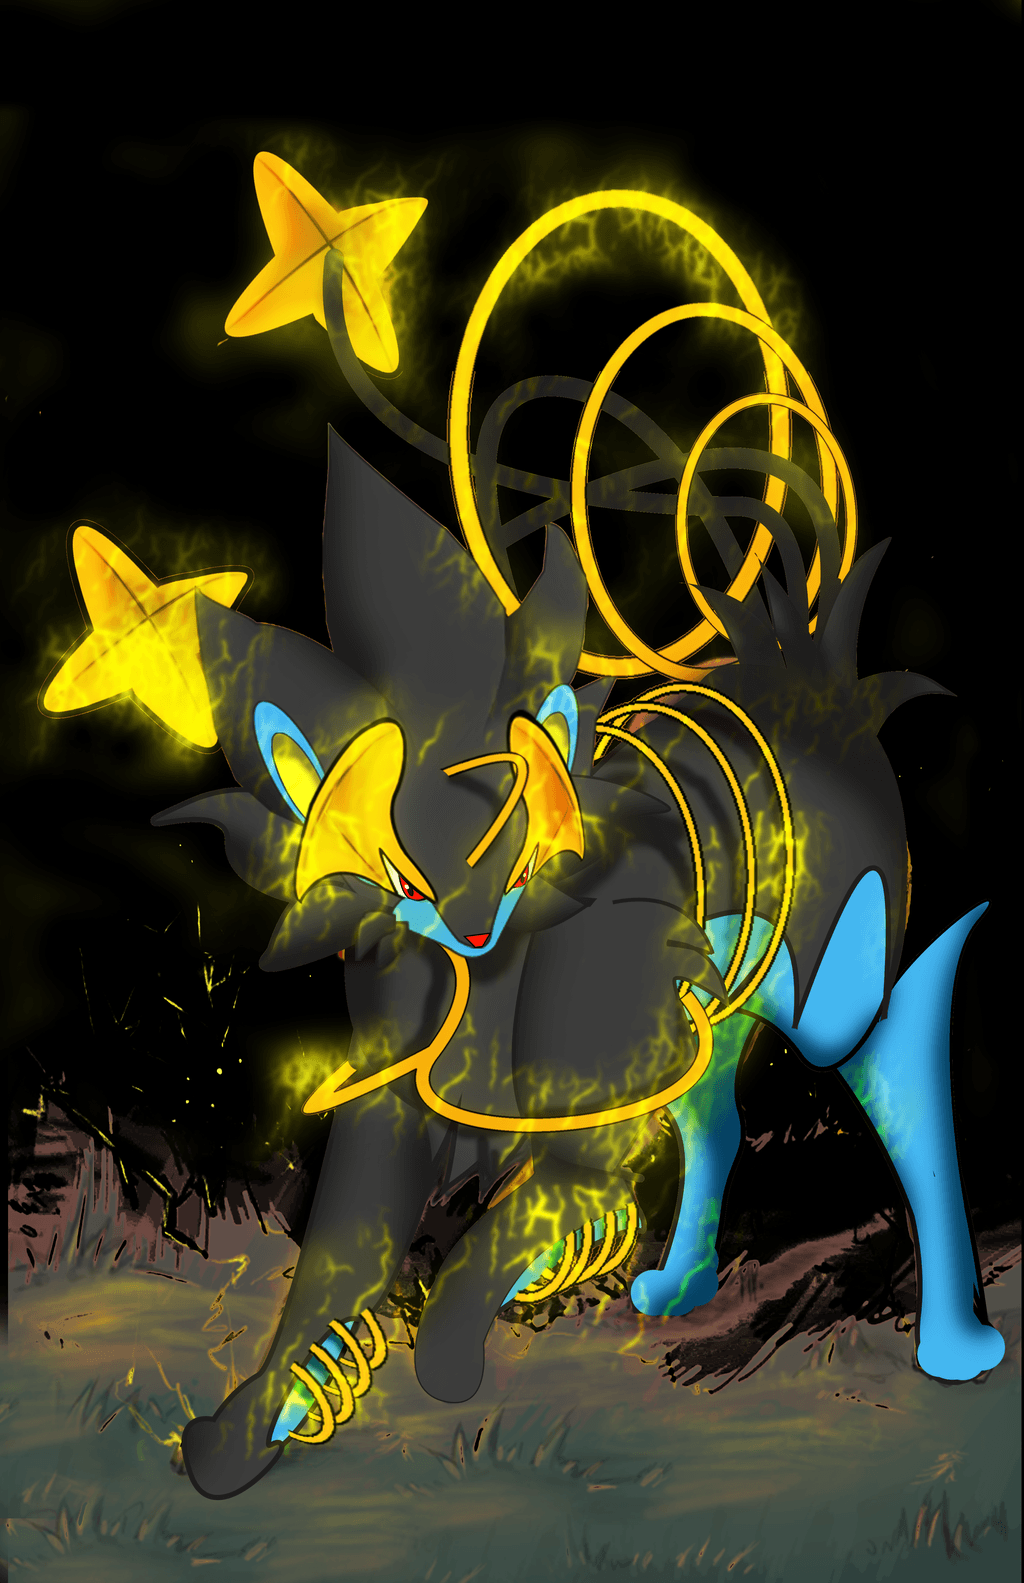 Luxray Pokemon Wallpapers Hd Images | Pokemon Images